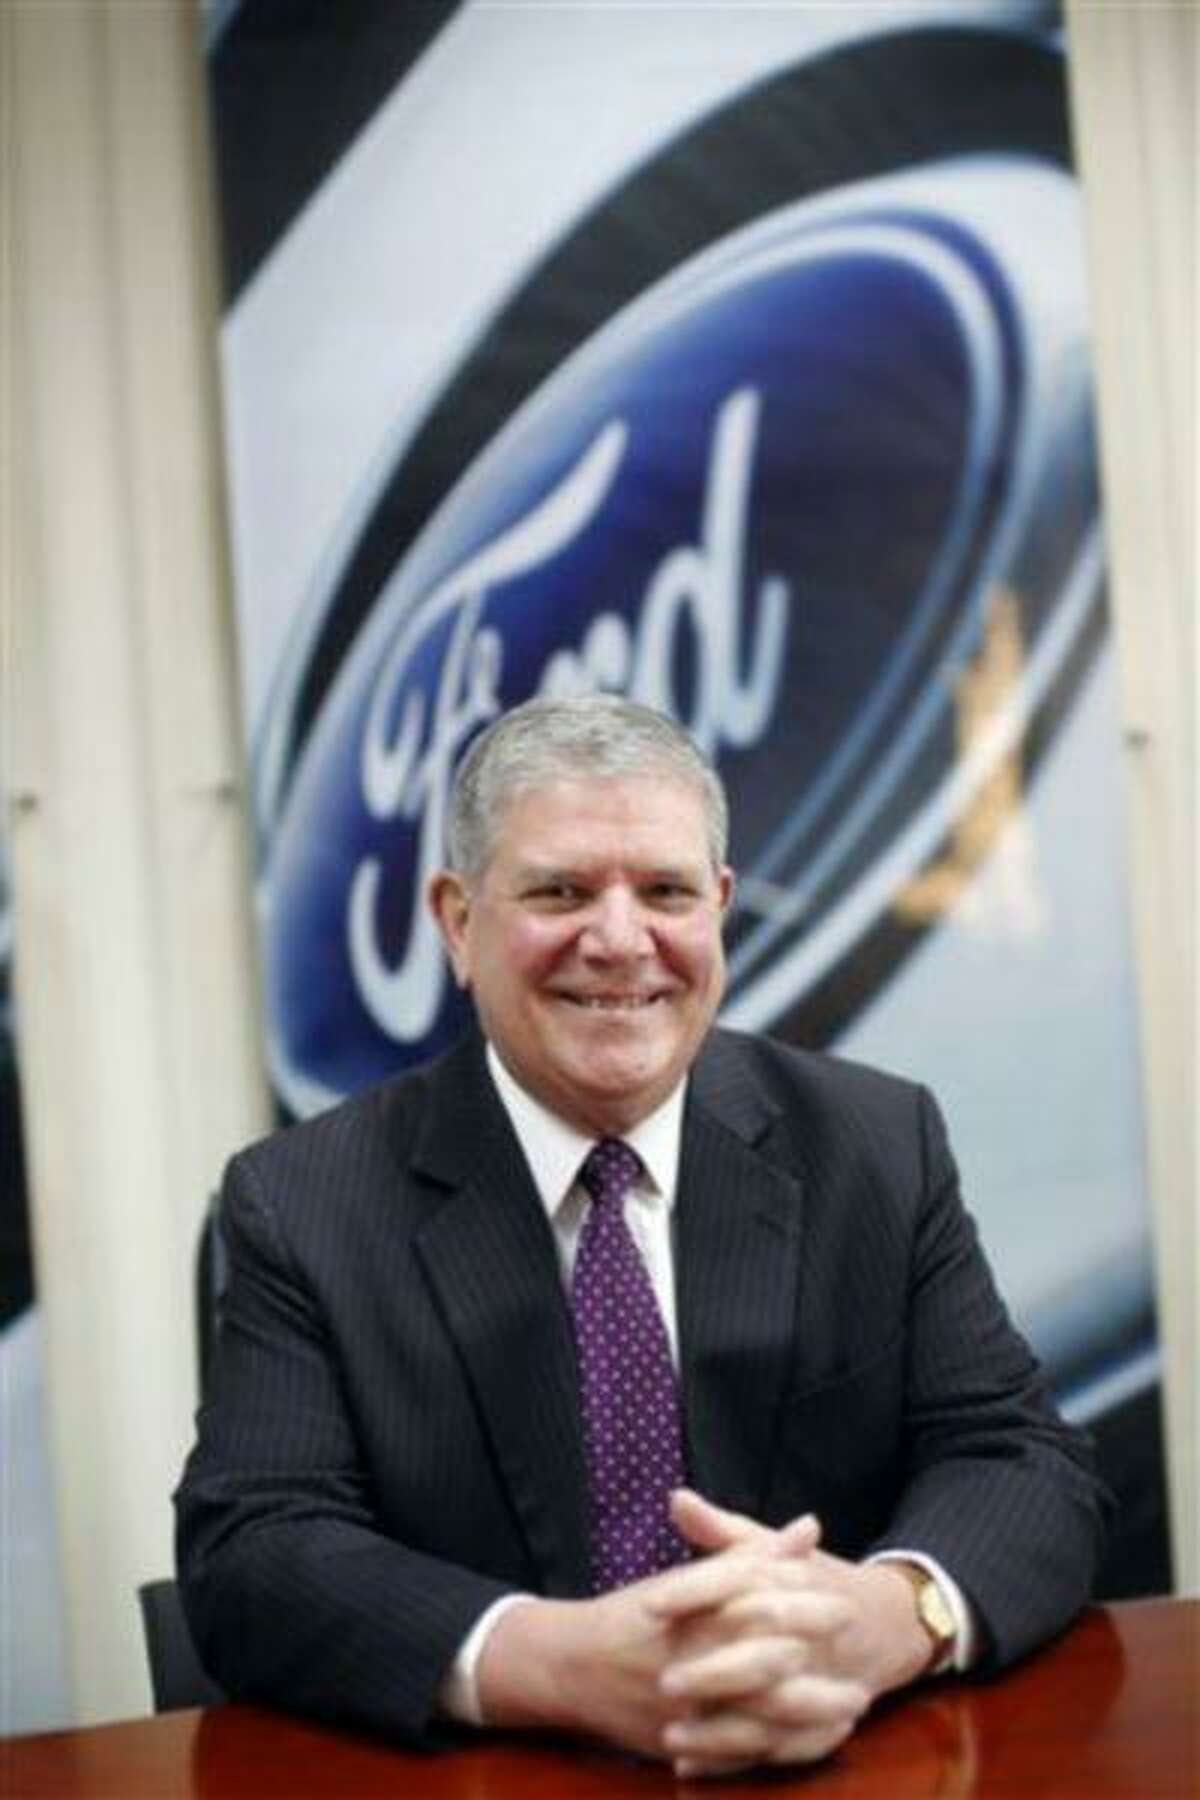 In this photo taken March 4, 2013, David Schoch, Ford Motor Company group vice president and president, Asia Pacific, poses for photos at his office in Shanghai, China. (AP Photo)